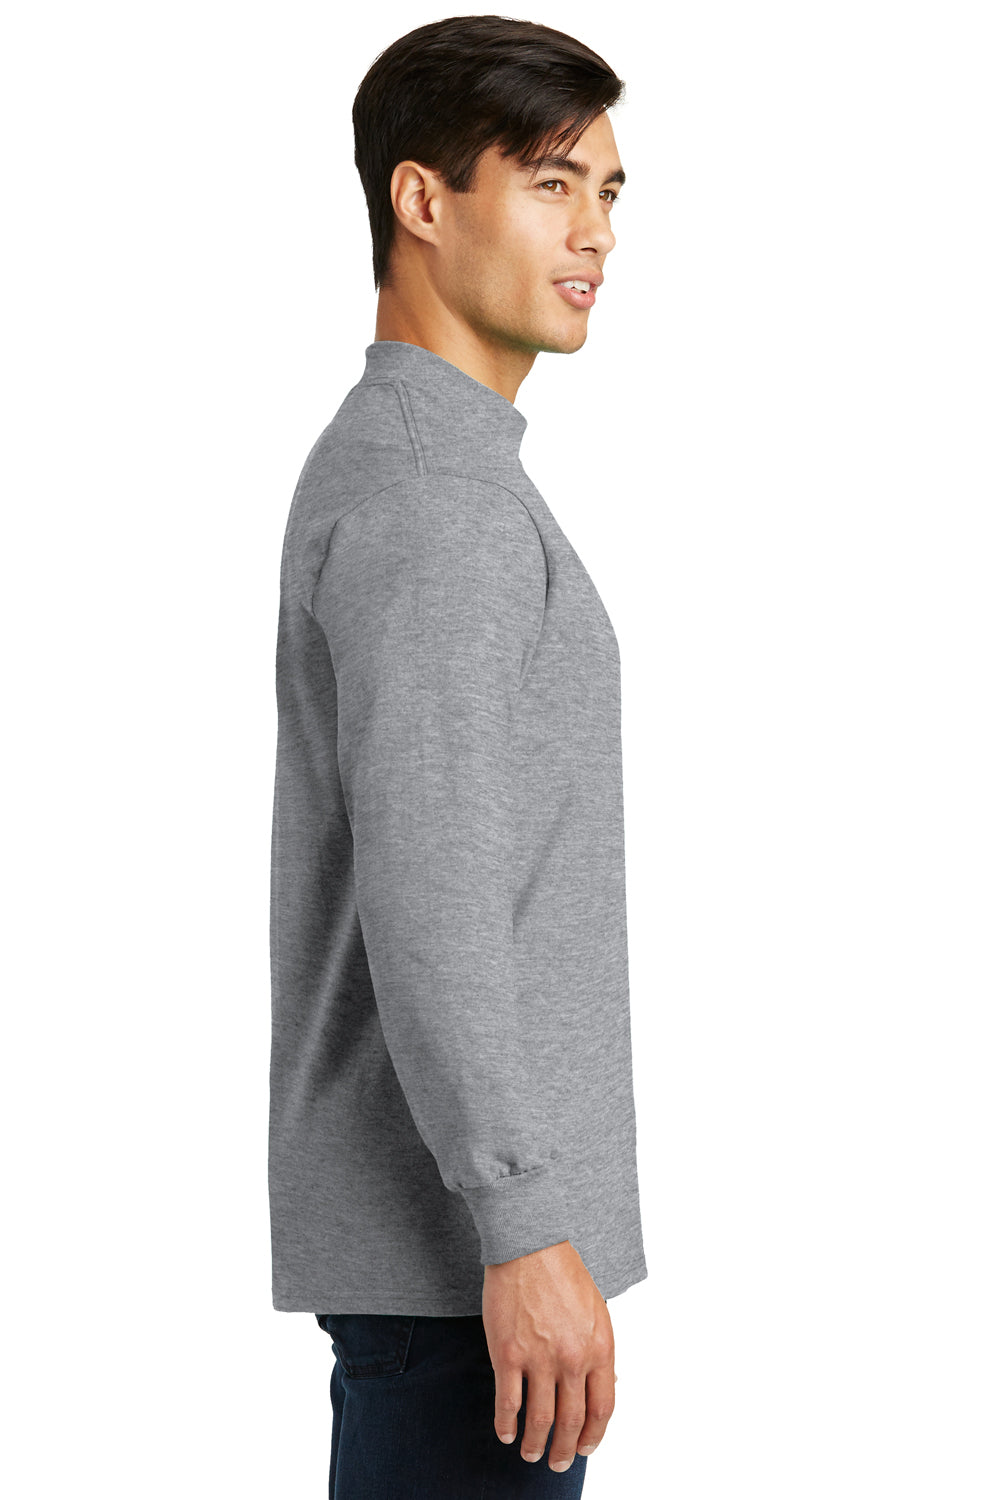 Port & Company PC61M Mens Essential Long Sleeve Mock Neck T-Shirt Heather Grey Side